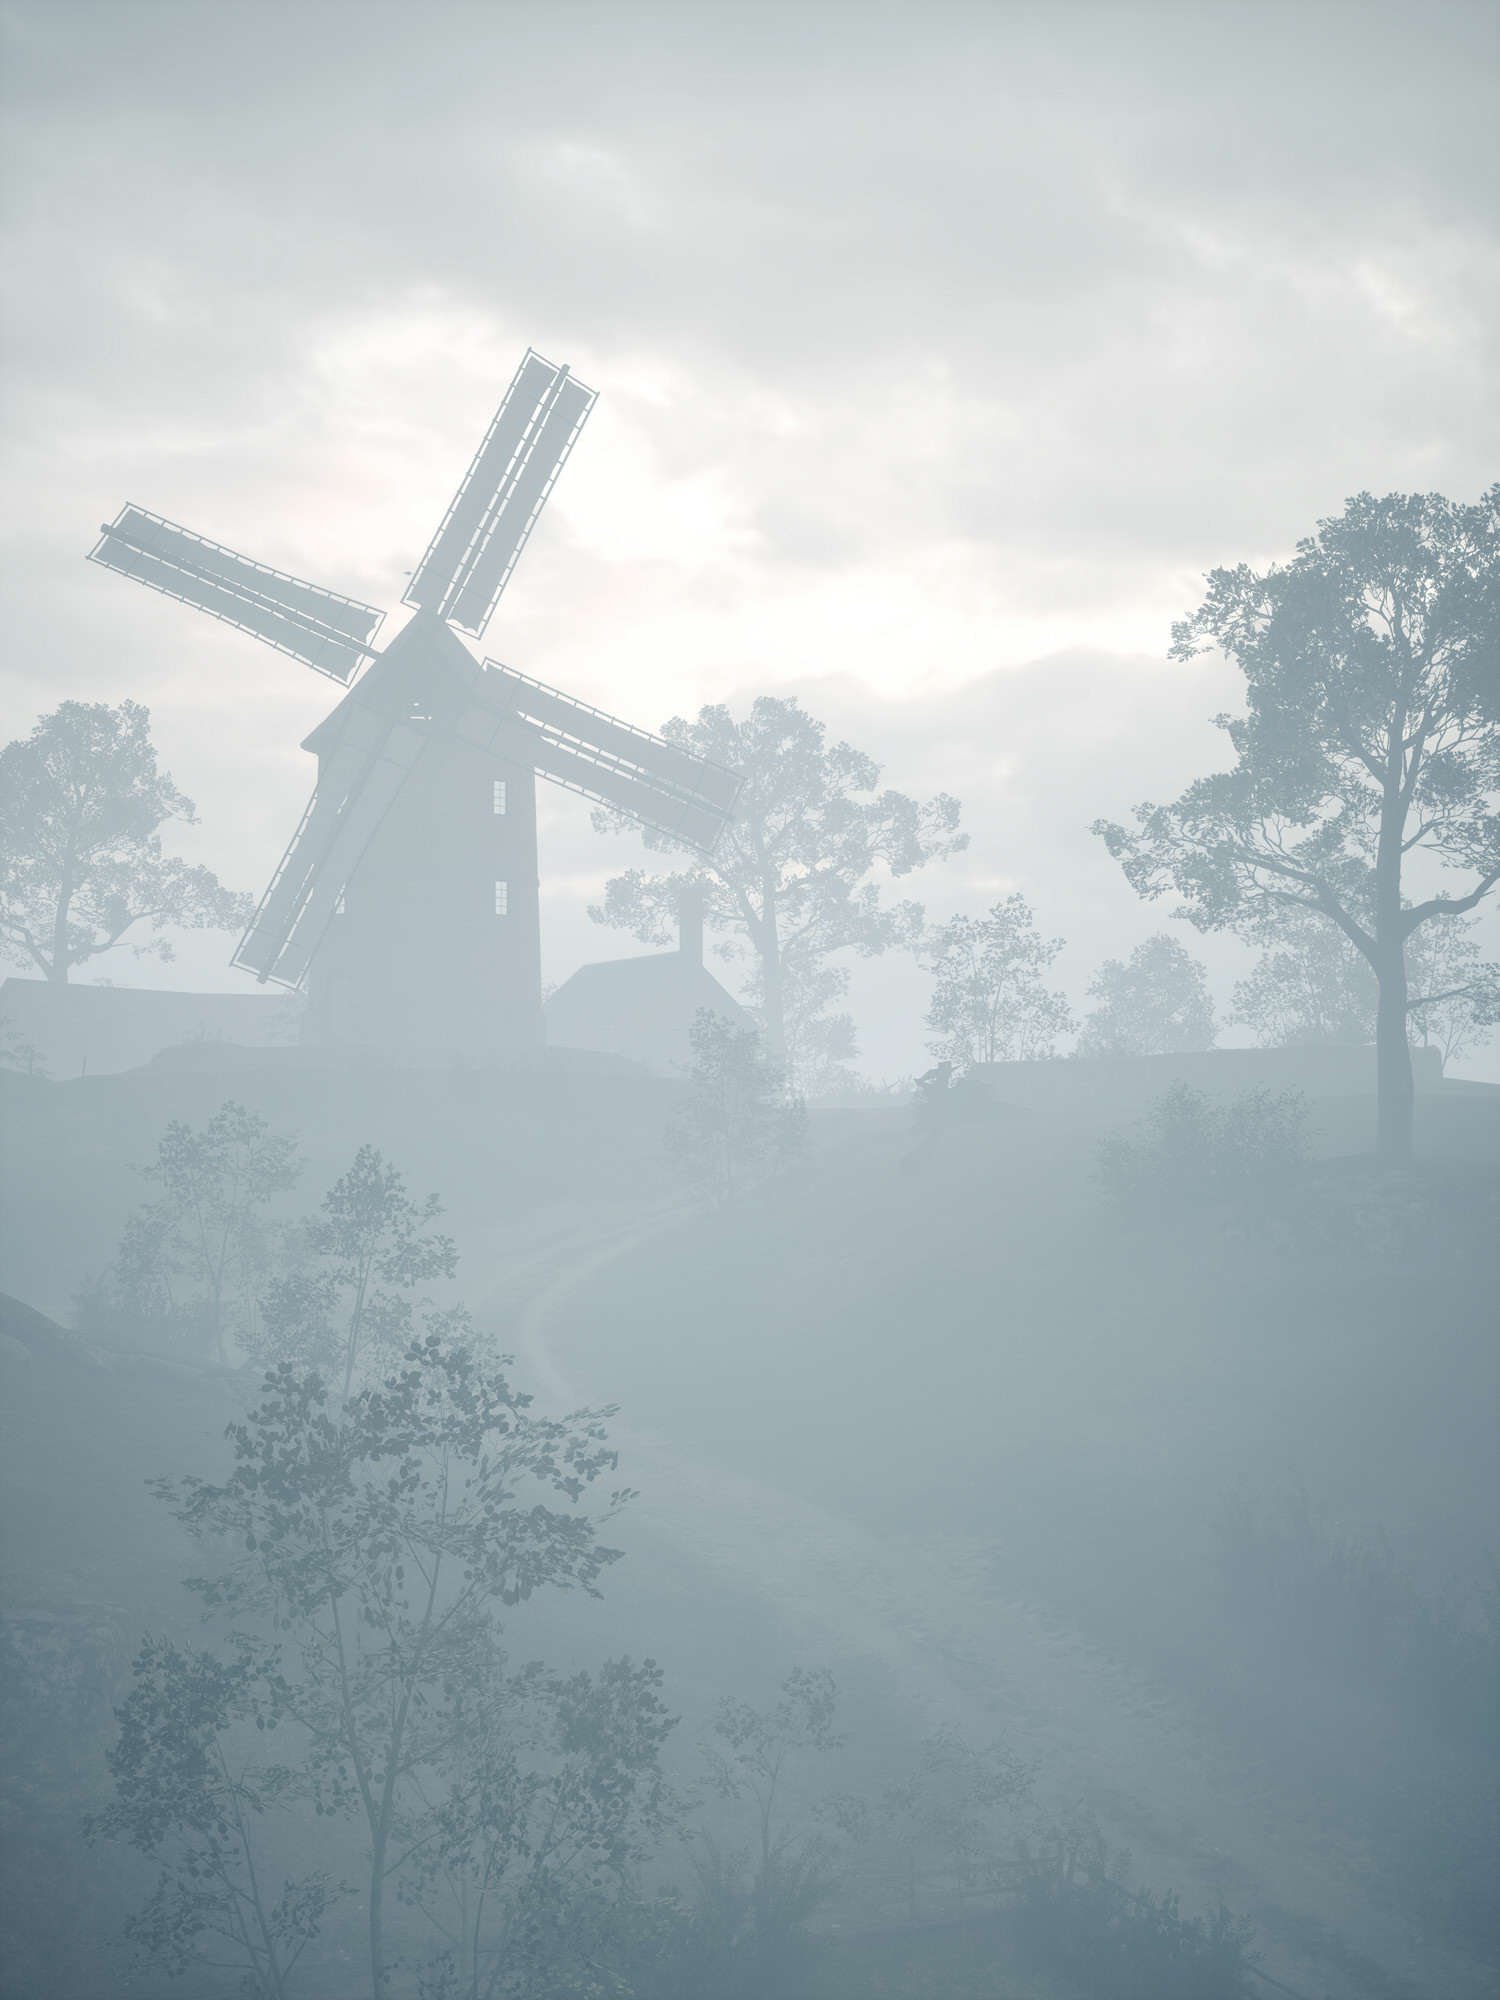 c8puKHA These Battlefield 1 Spectator Mode Screenshots Are Gorgeous